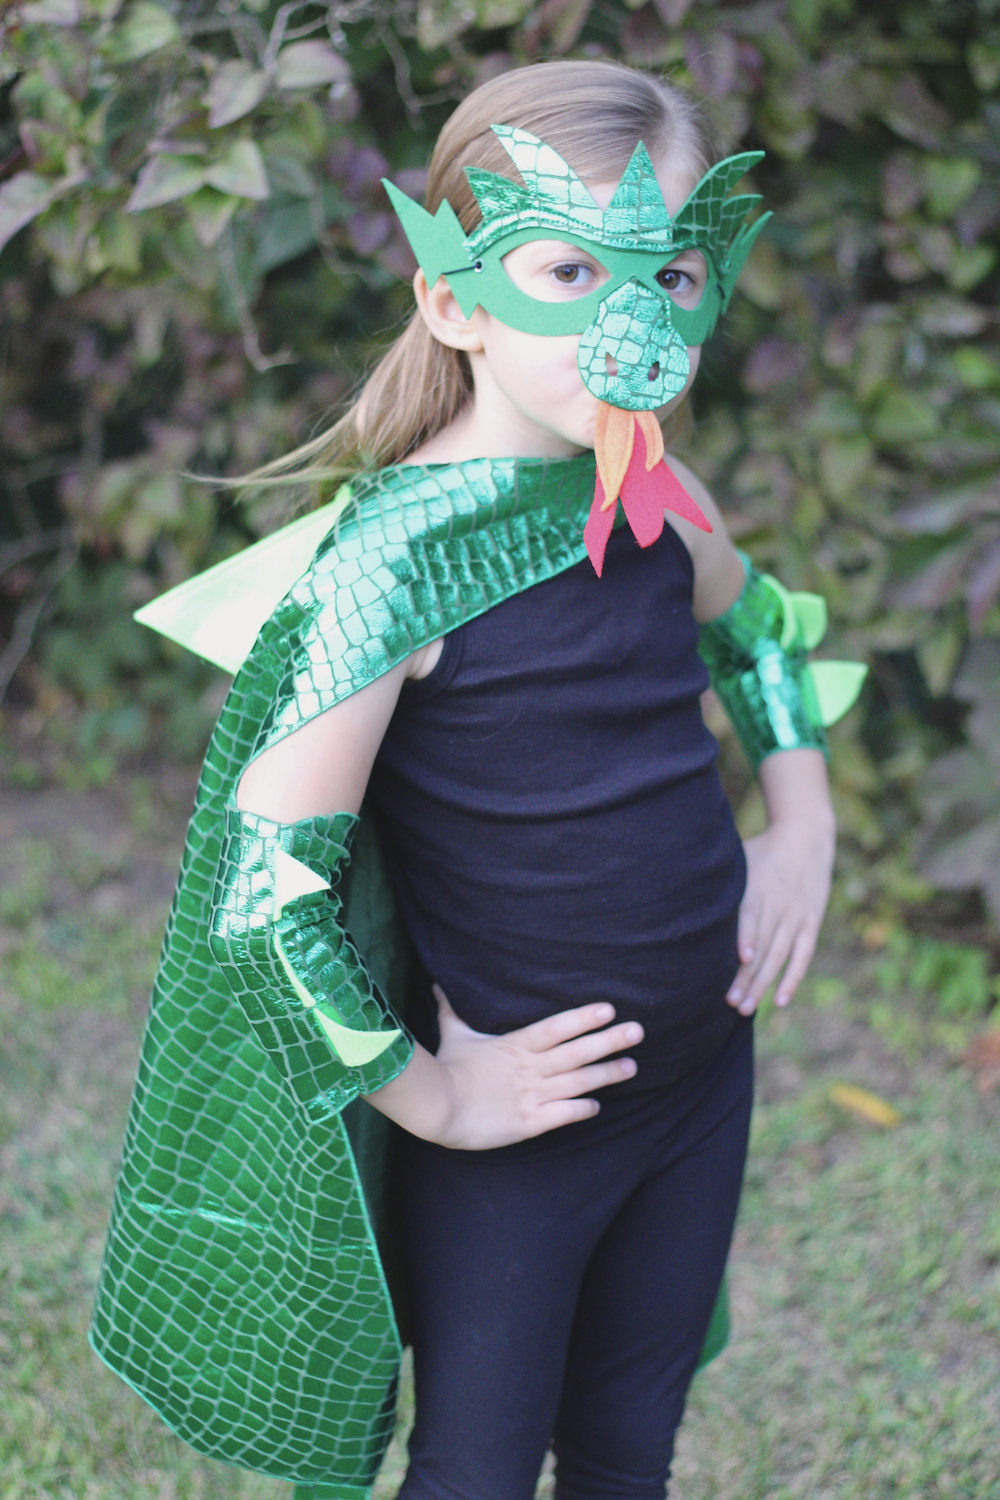 Kids' Game of Thrones costume ideas: Khaleesi's dragons come to life via Super Kid Capes